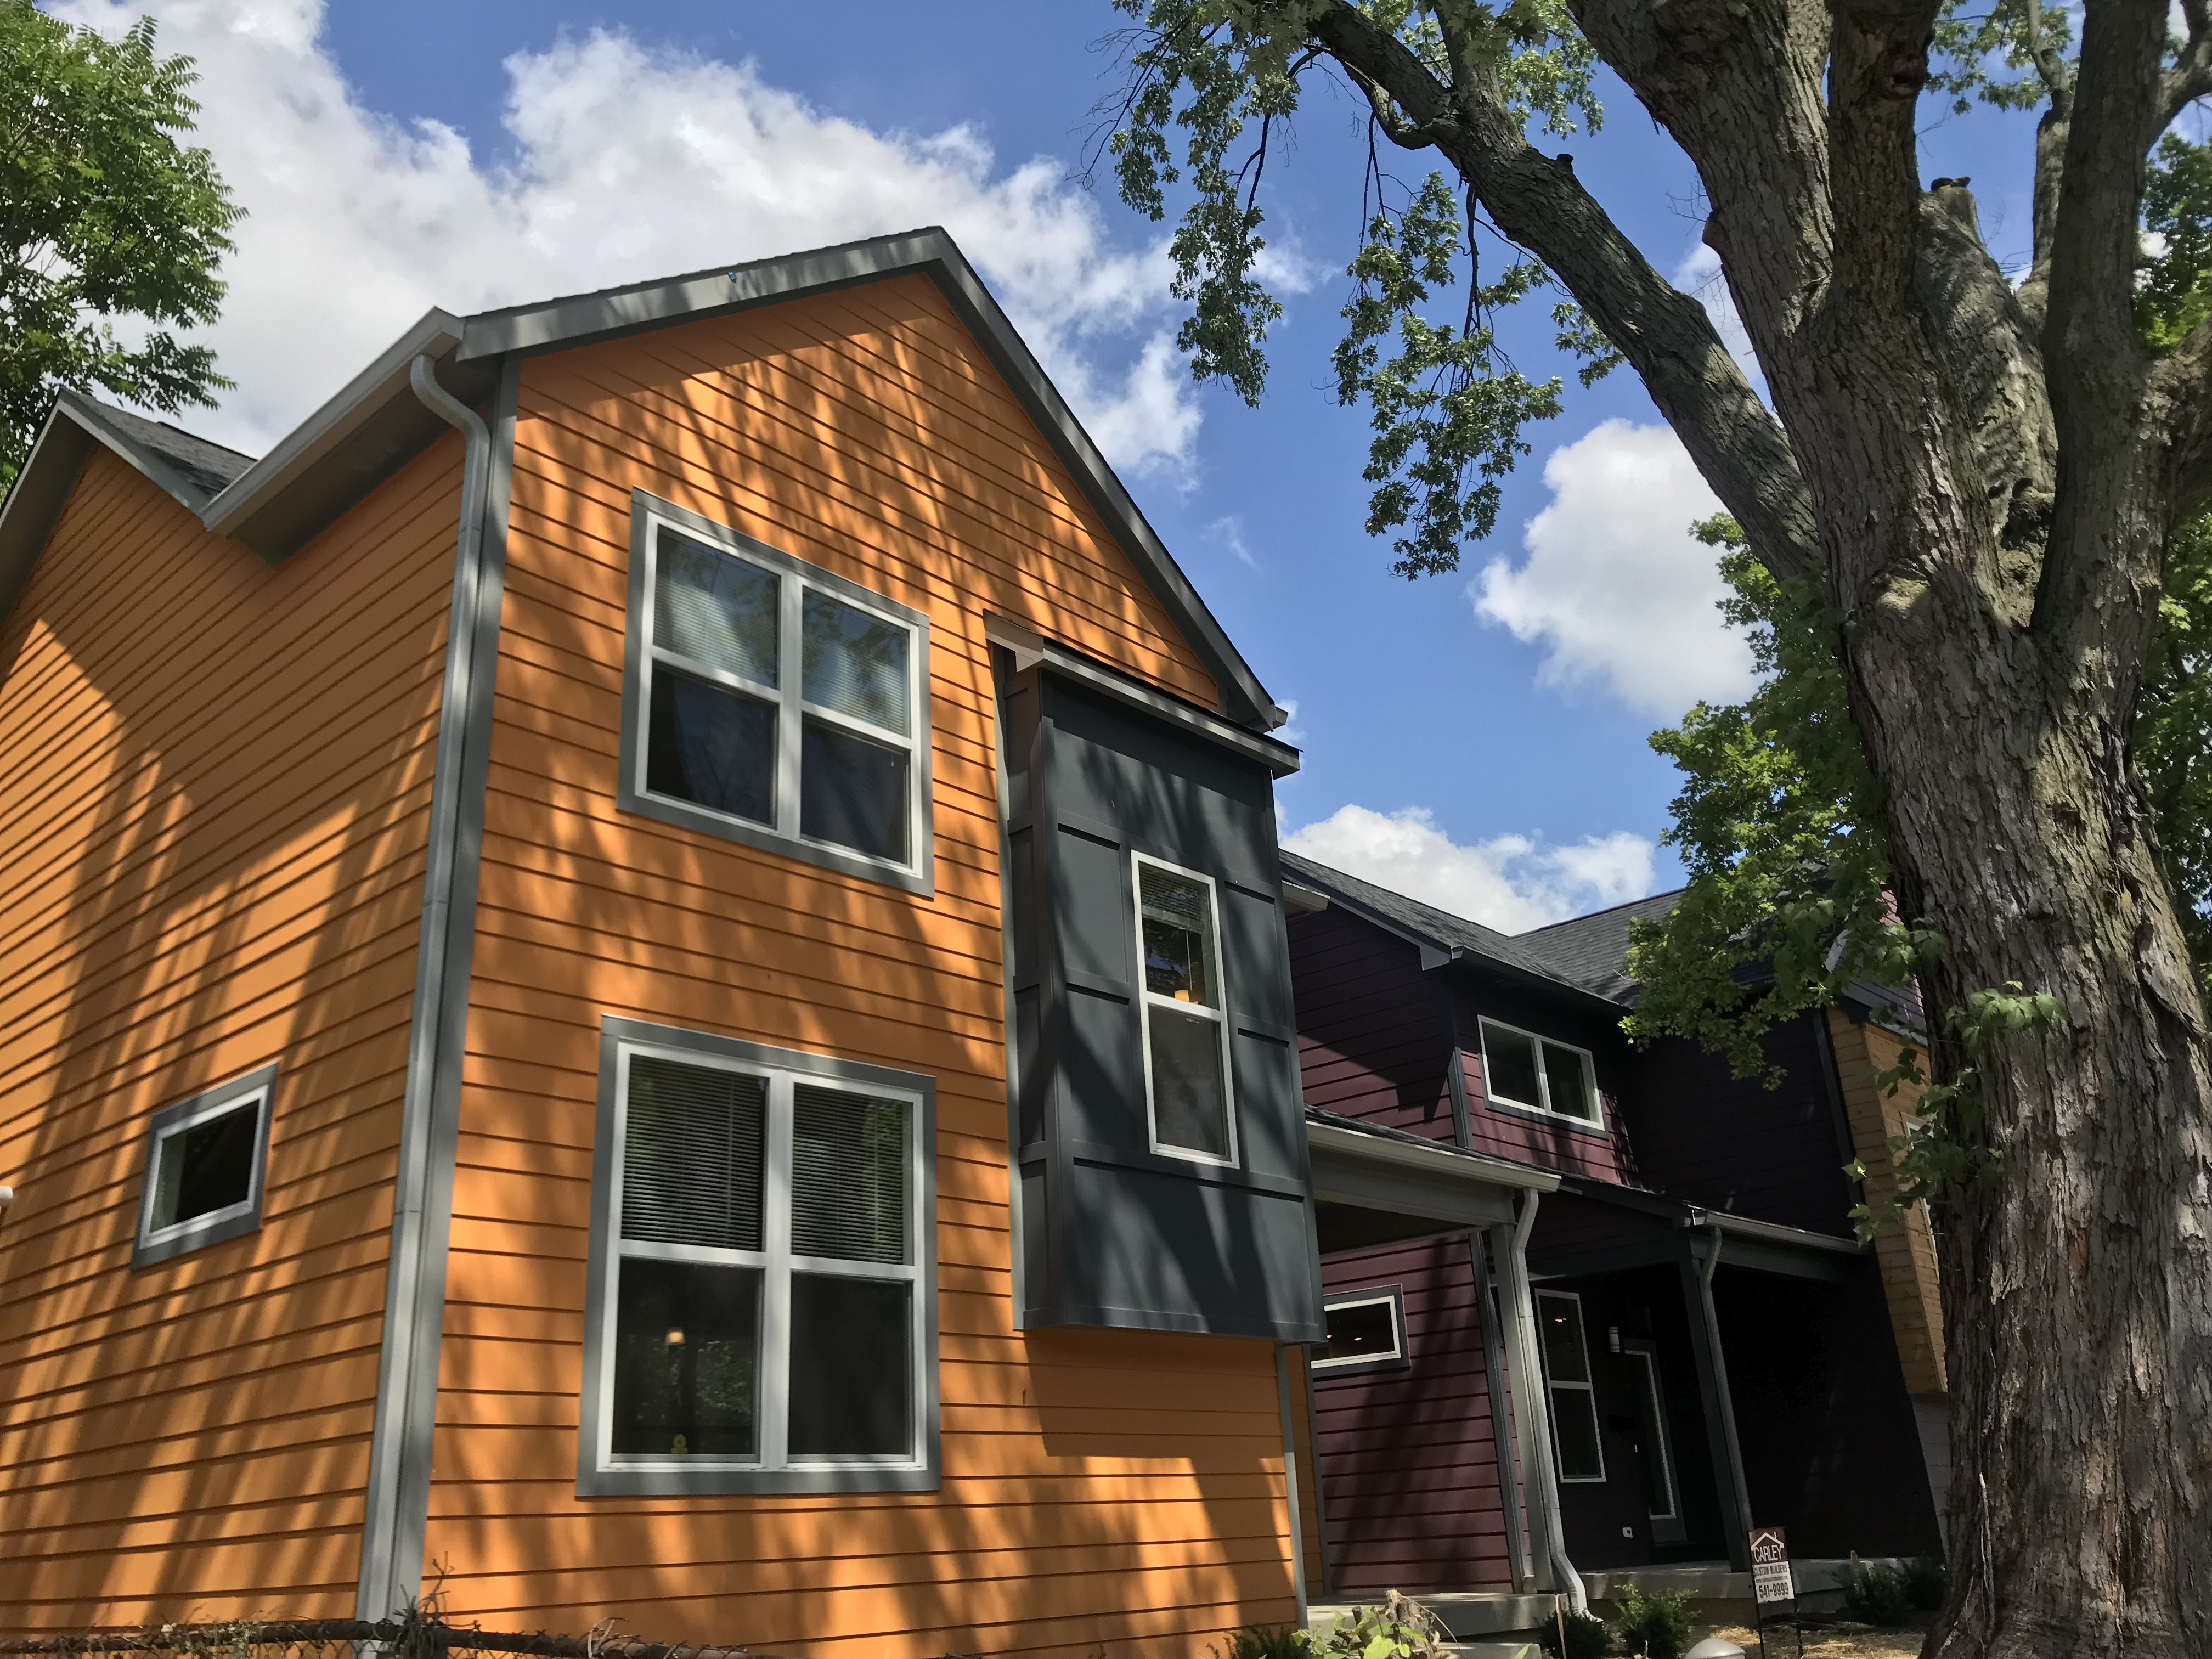 The Educators' Village is a two-block cluster of 22 new and restored bold-colored homes in the St. Clair Place neighborhood. Though marketed to teachers, the homes are set at below-market prices for anyone within a low- to middle-income cap.